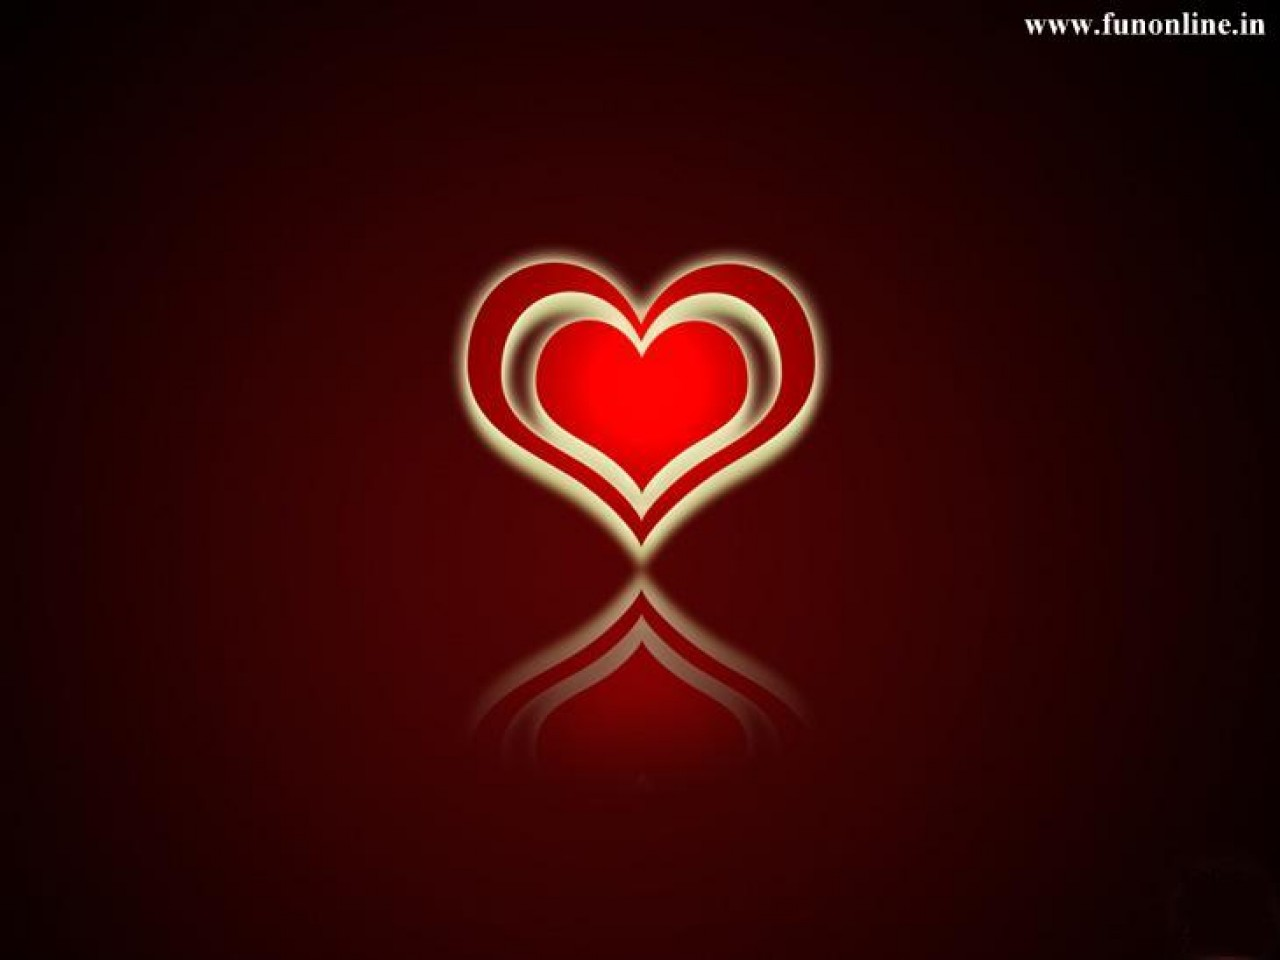 Heart Love Wallpaper Images 4 Wide Wallpaper Hdlovewall Com